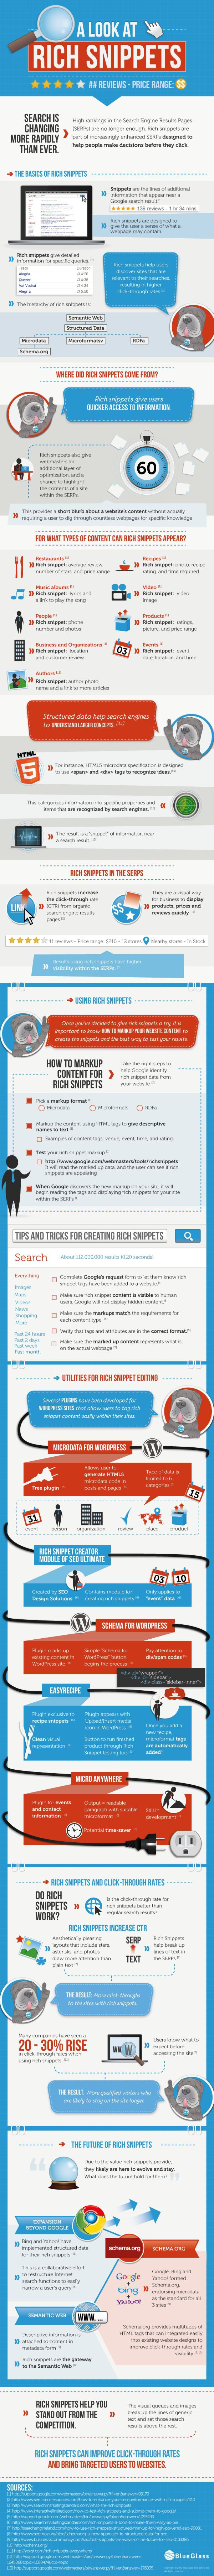 Detailed rich snippets infographic: Digital Marketing, Rich Snippets, Reputation Management, Website, Web Site, Visual Guide, Social Media, Search Engine Optimism, Seo Infographic